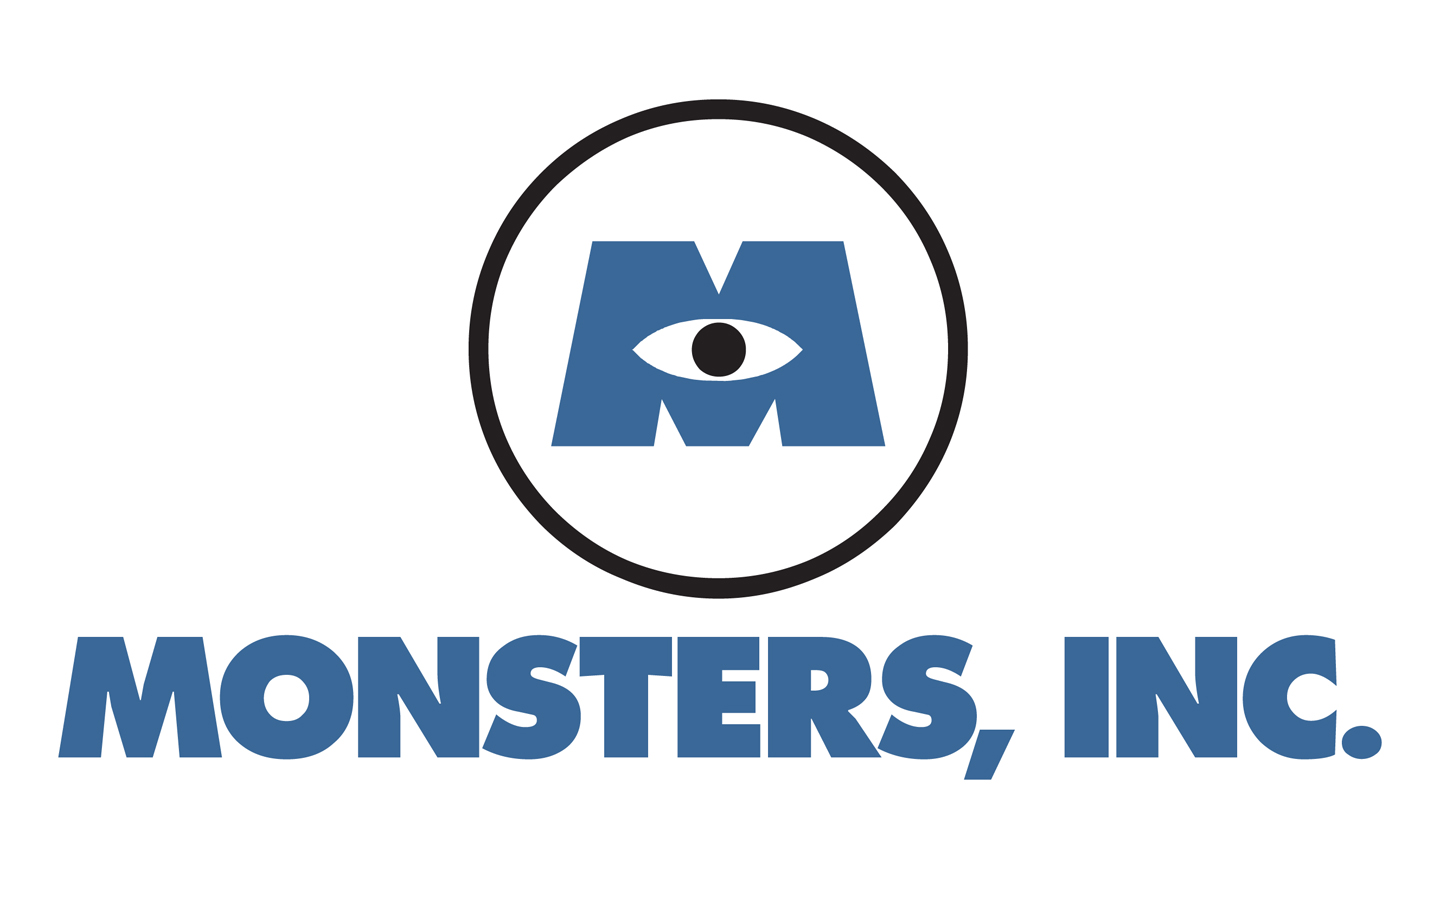 Monsters (franquicia)